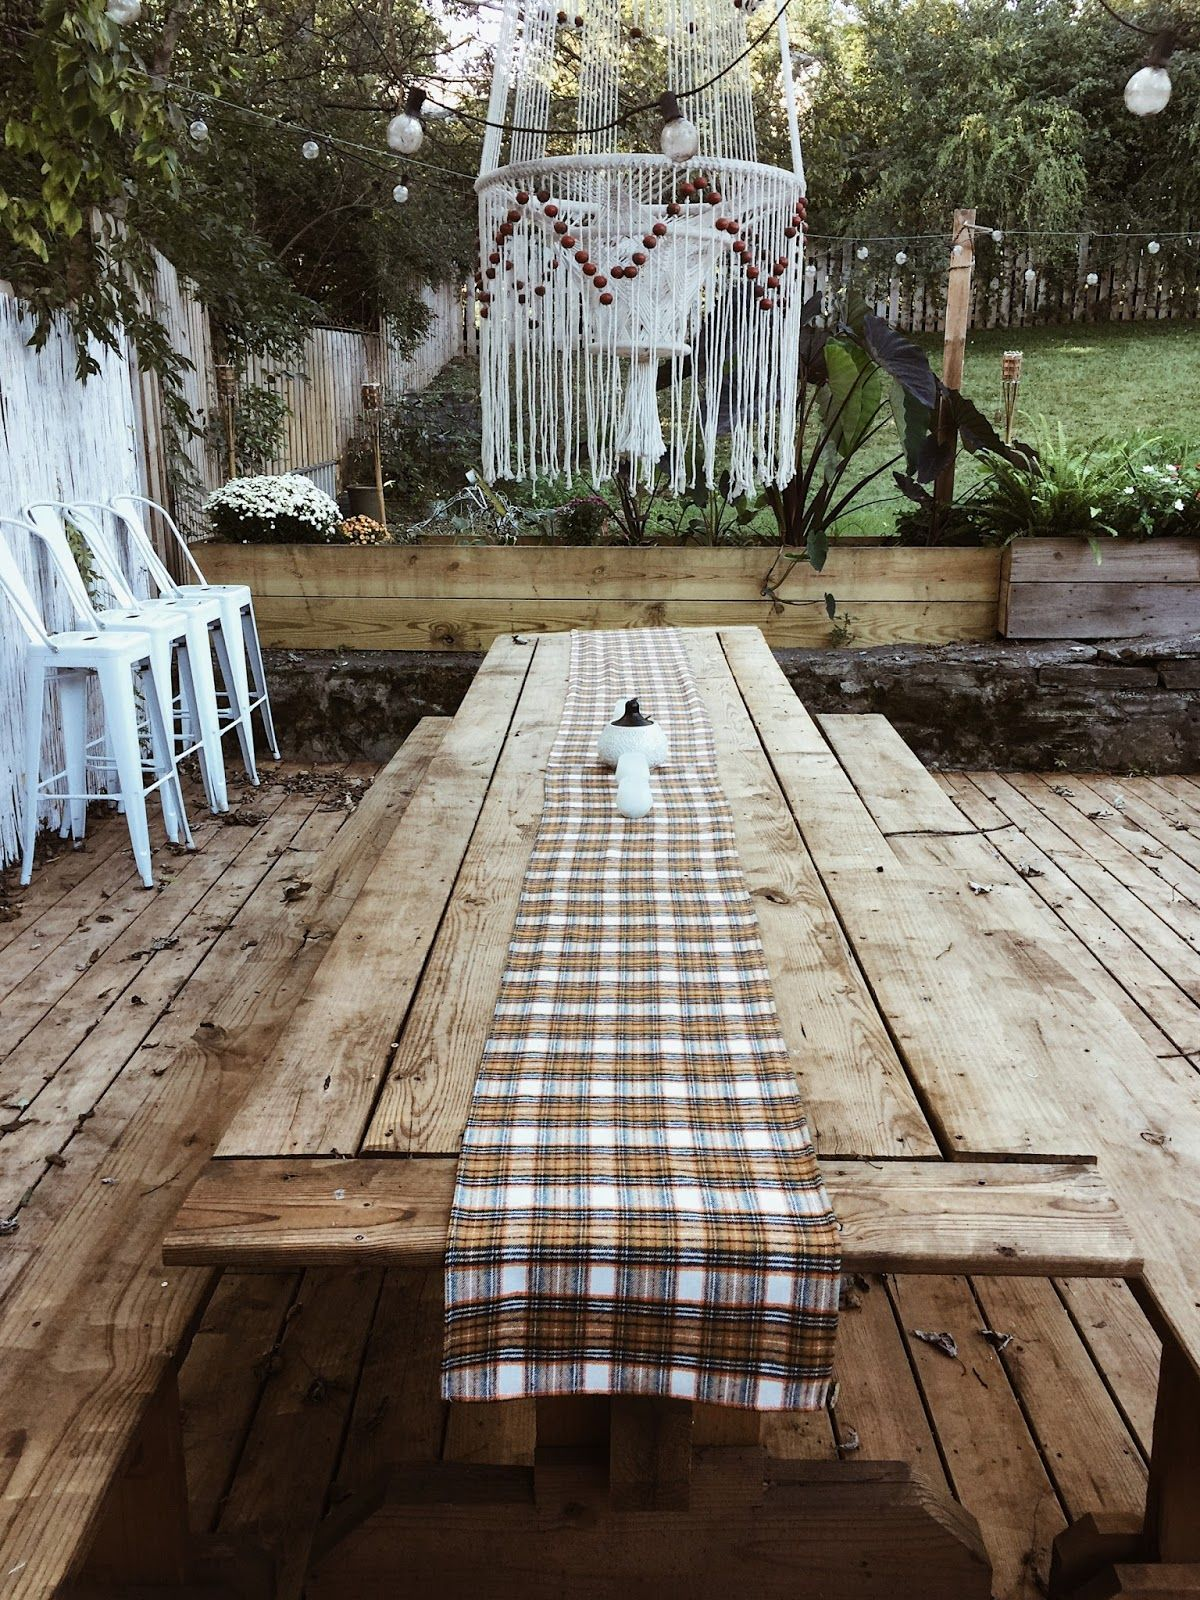 Diy table runner beginners sewing project with images